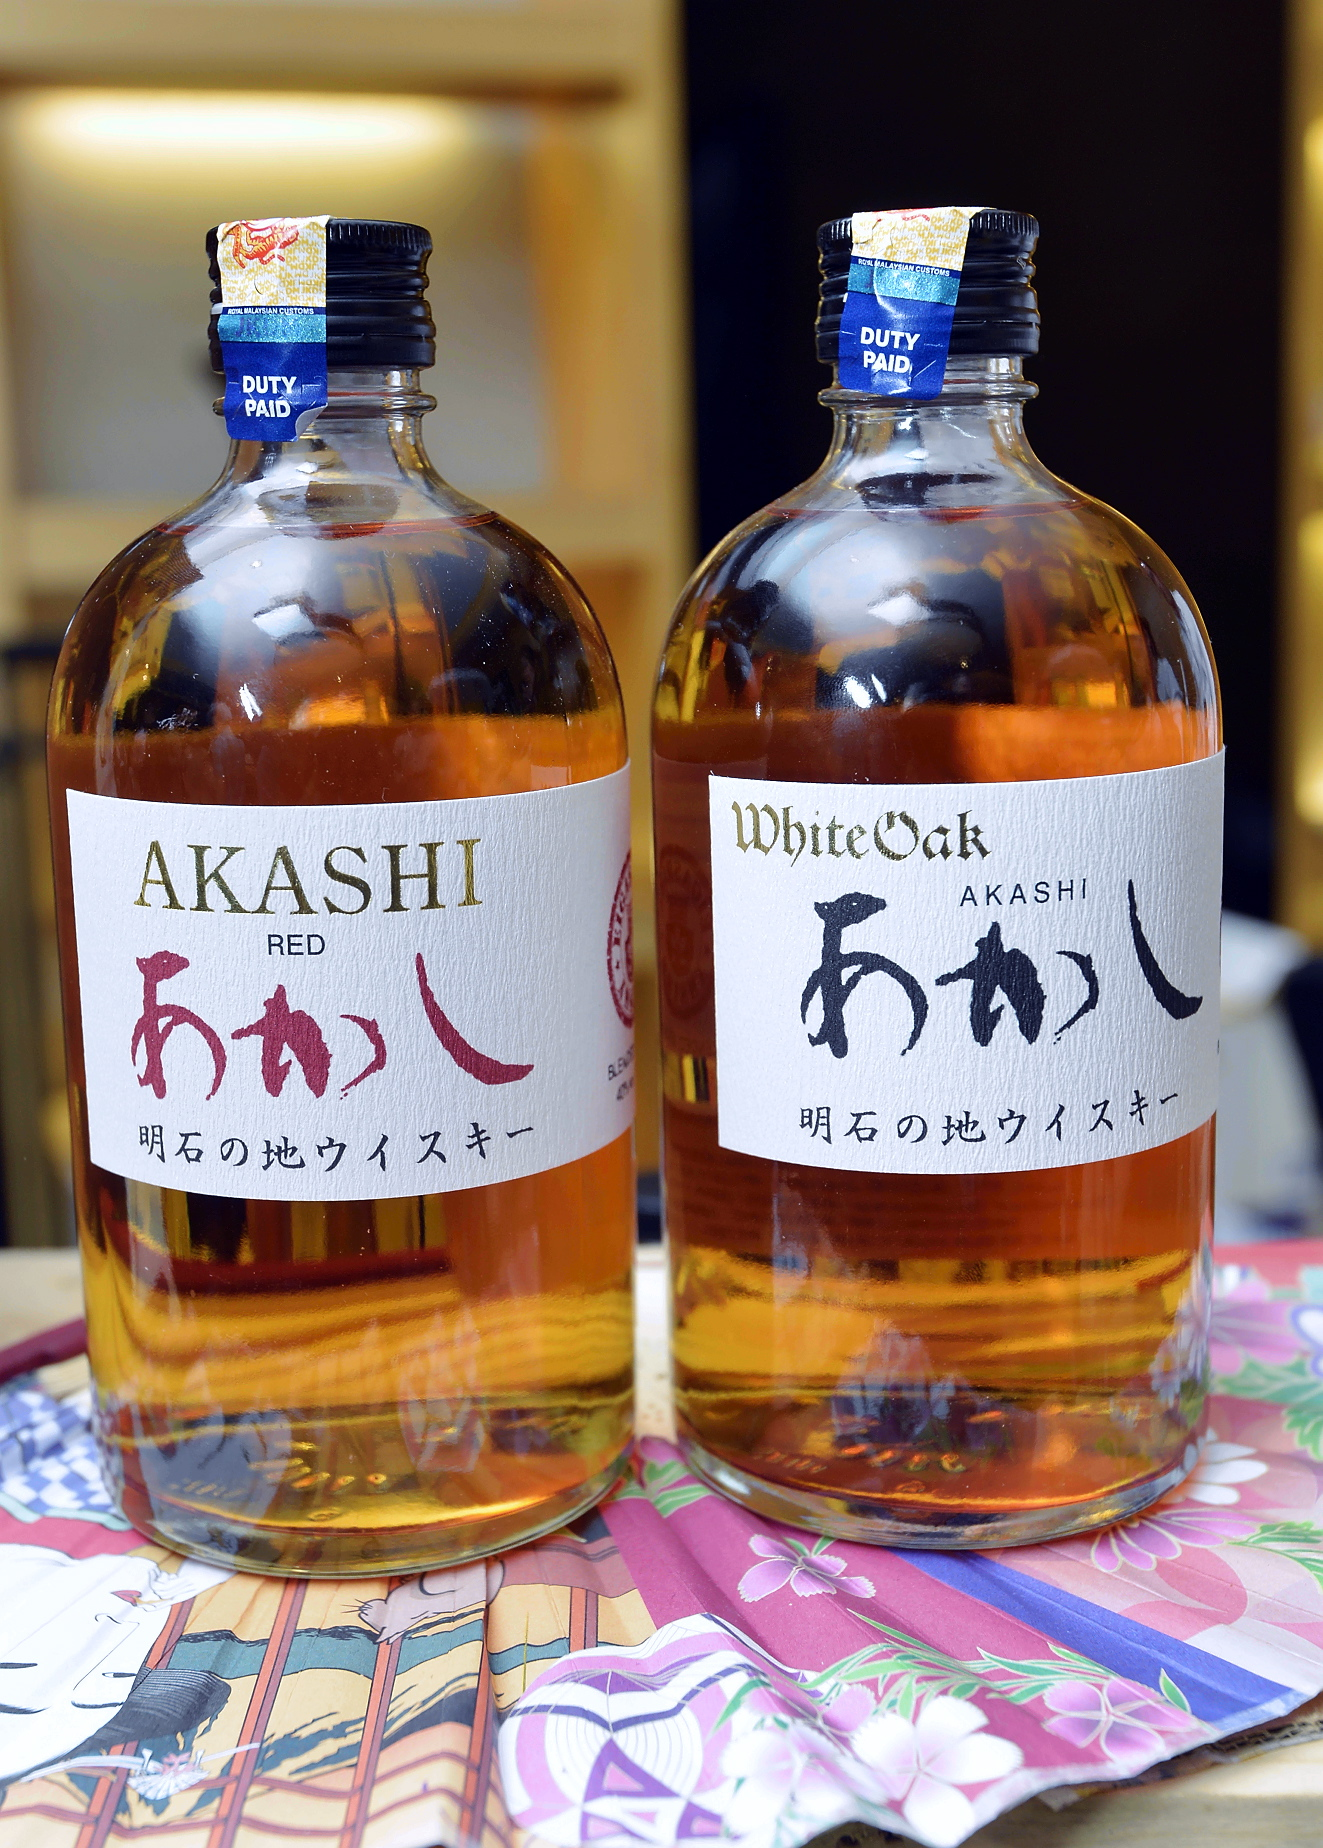 Akashi's Japanese whiskys were an unusual treat.